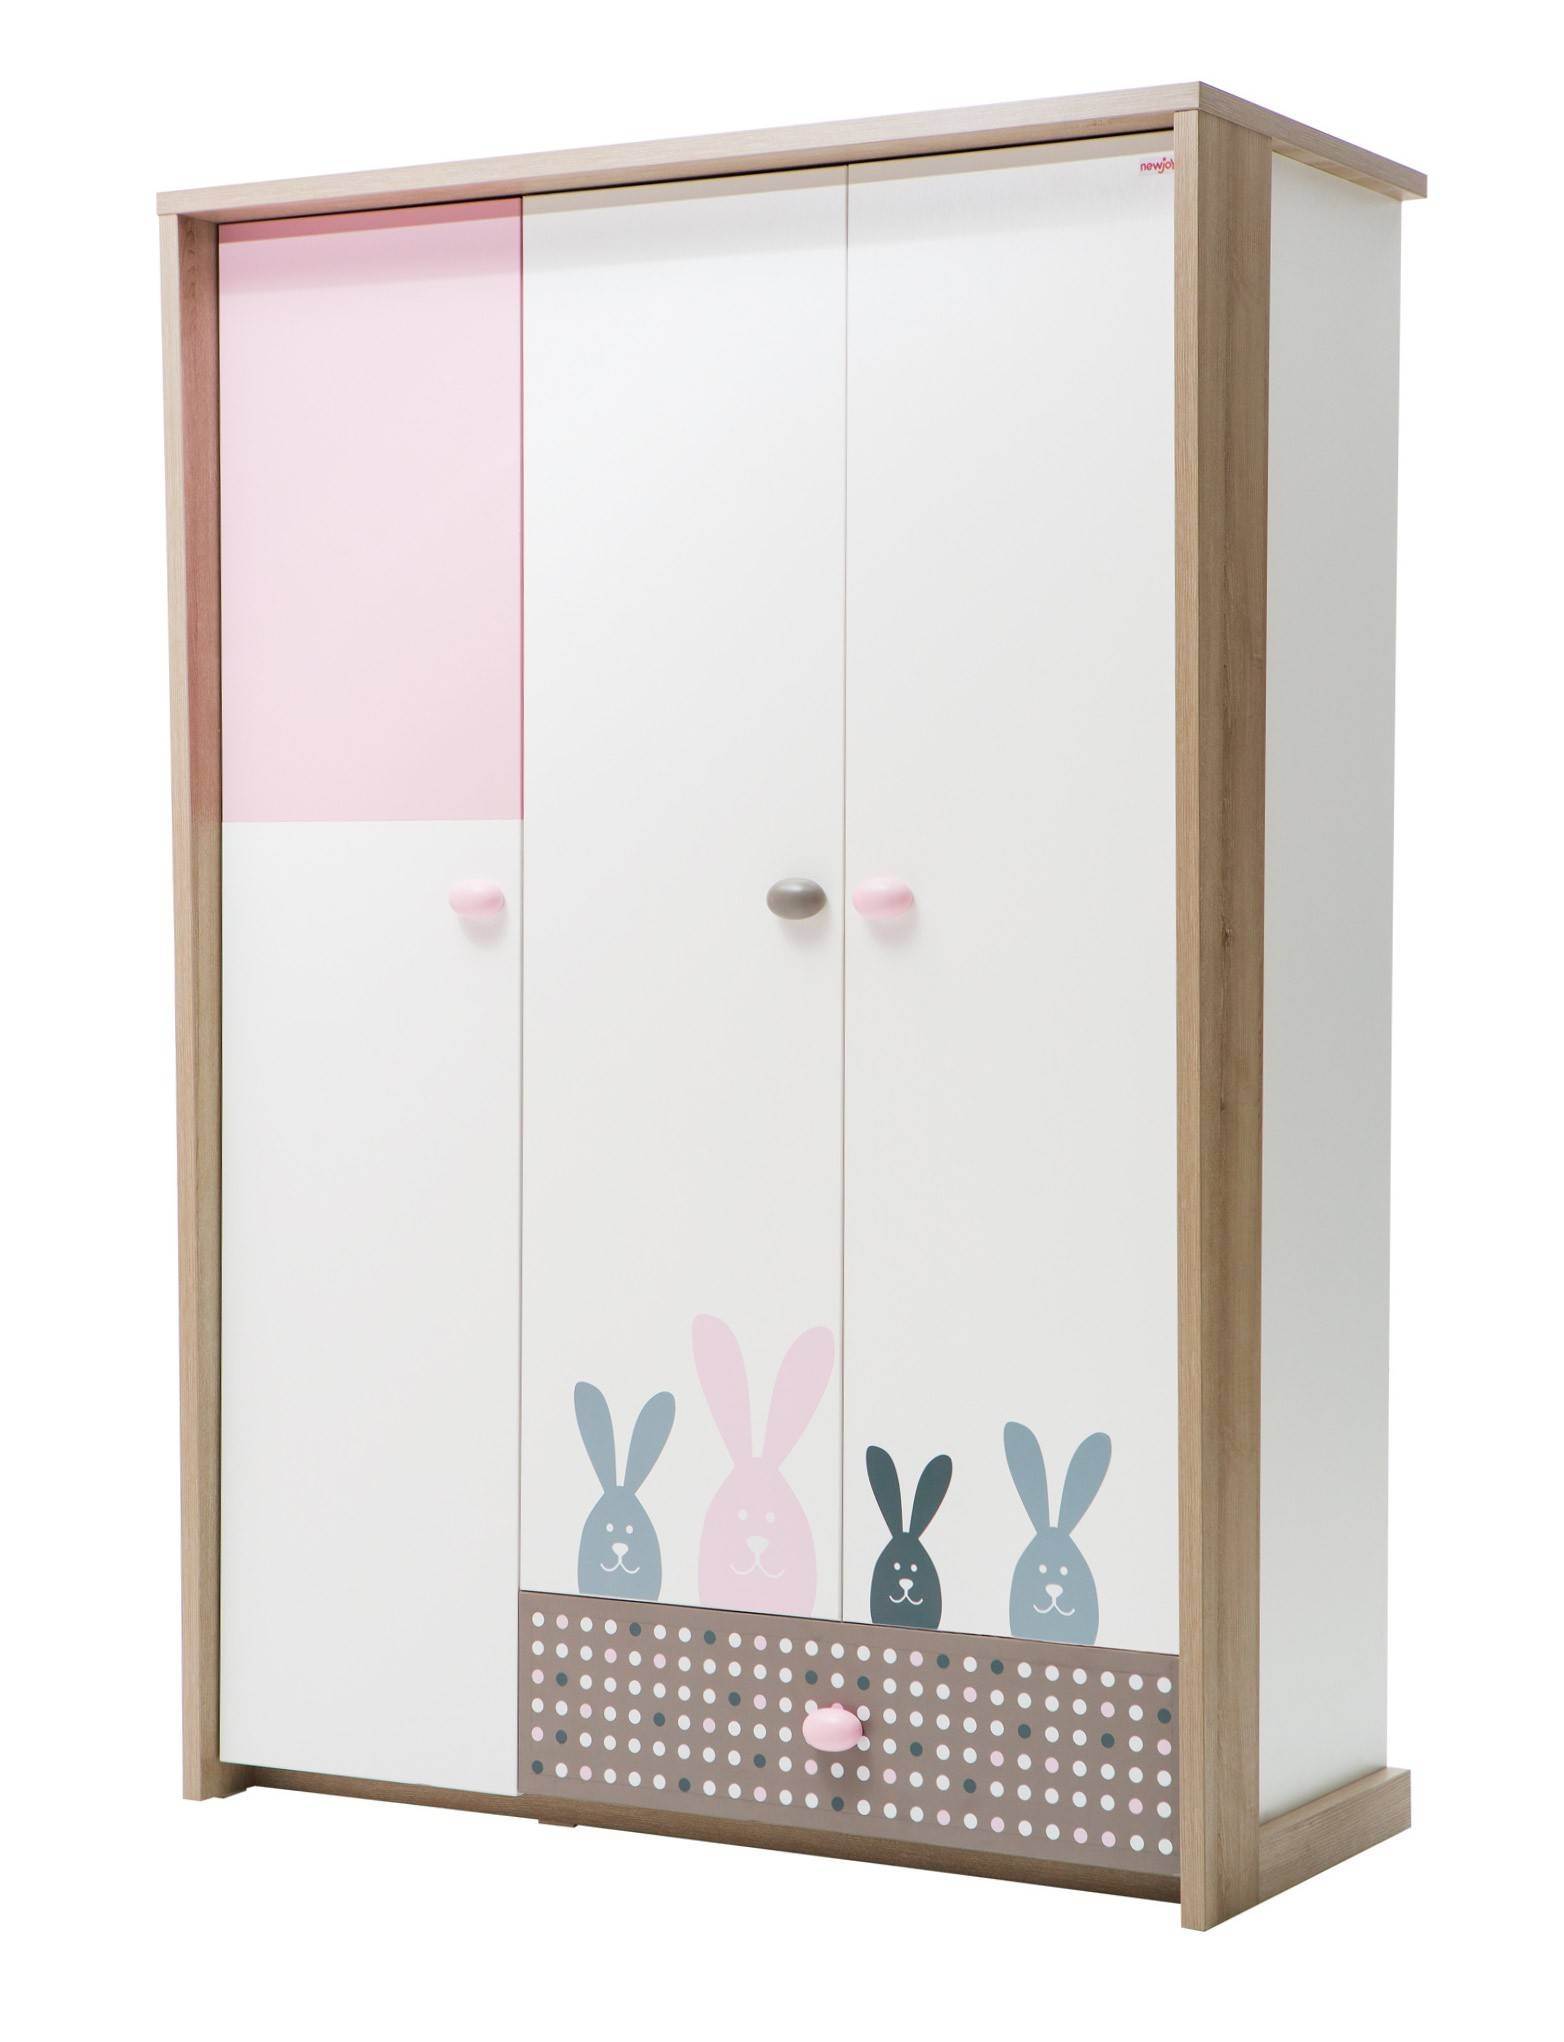 Newjoy Pink Bunny 3 Door Children's Wardrobe in Childrens Pink Wardrobes (Image 18 of 30)